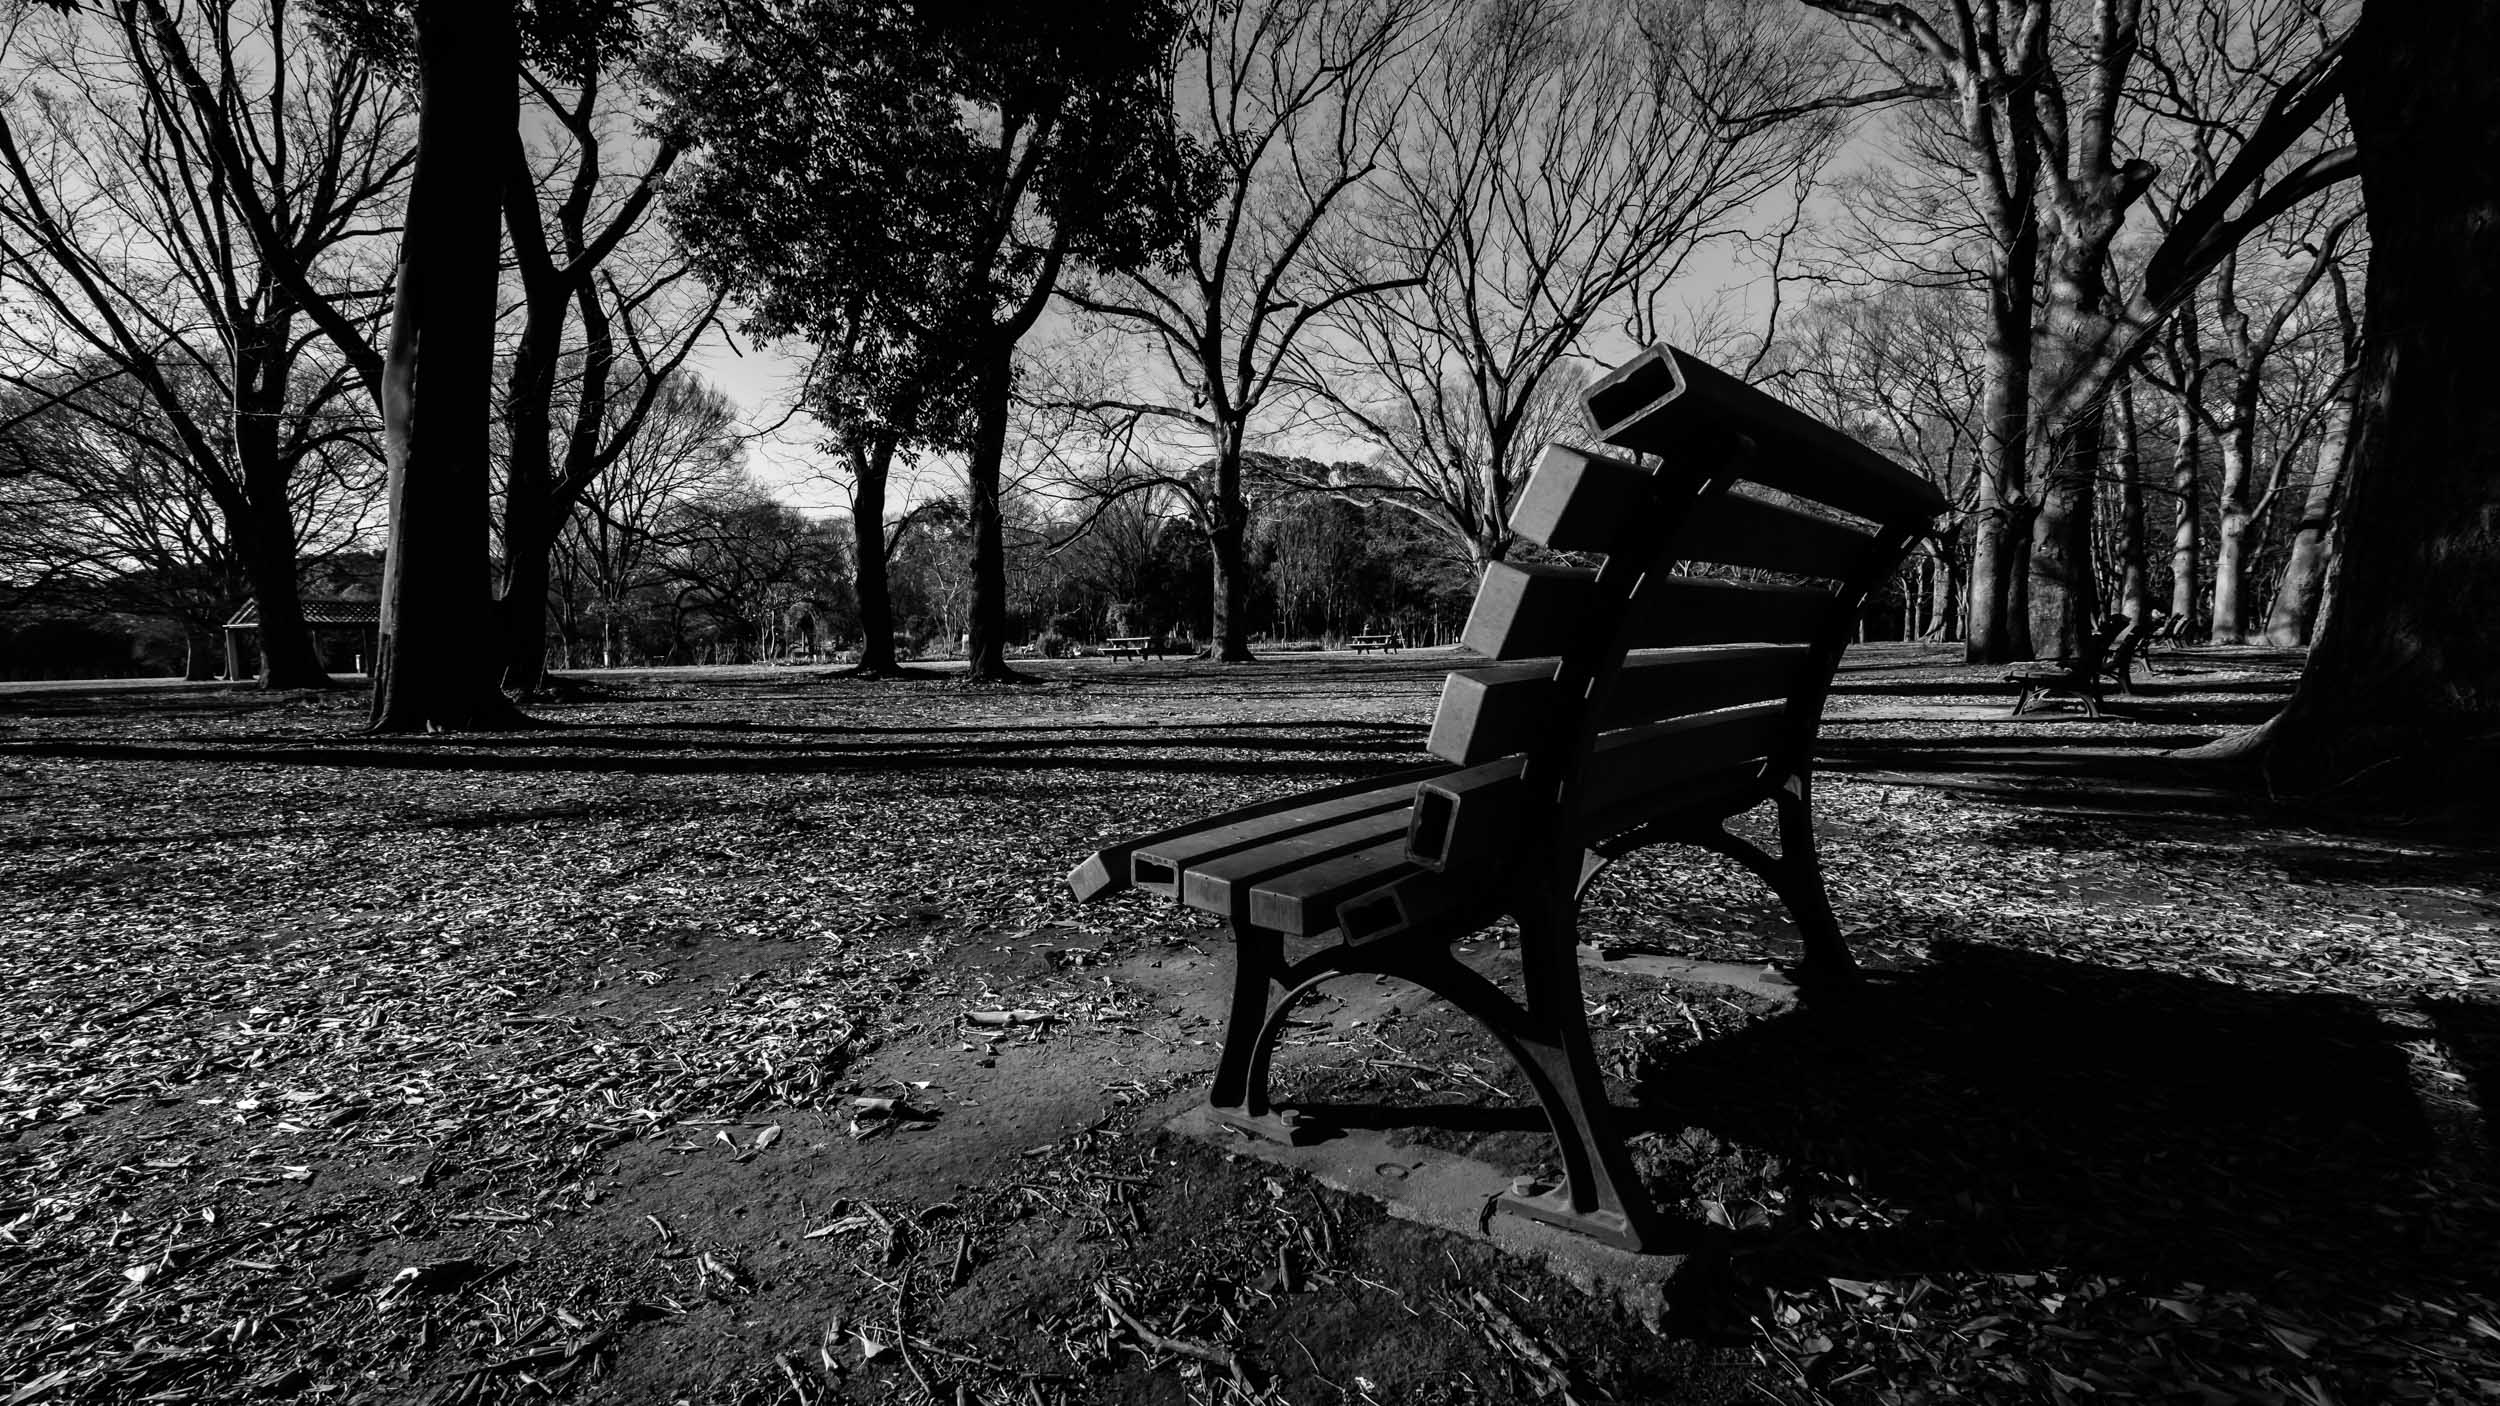 In winter, most of Yoyogi Park's benches are empty